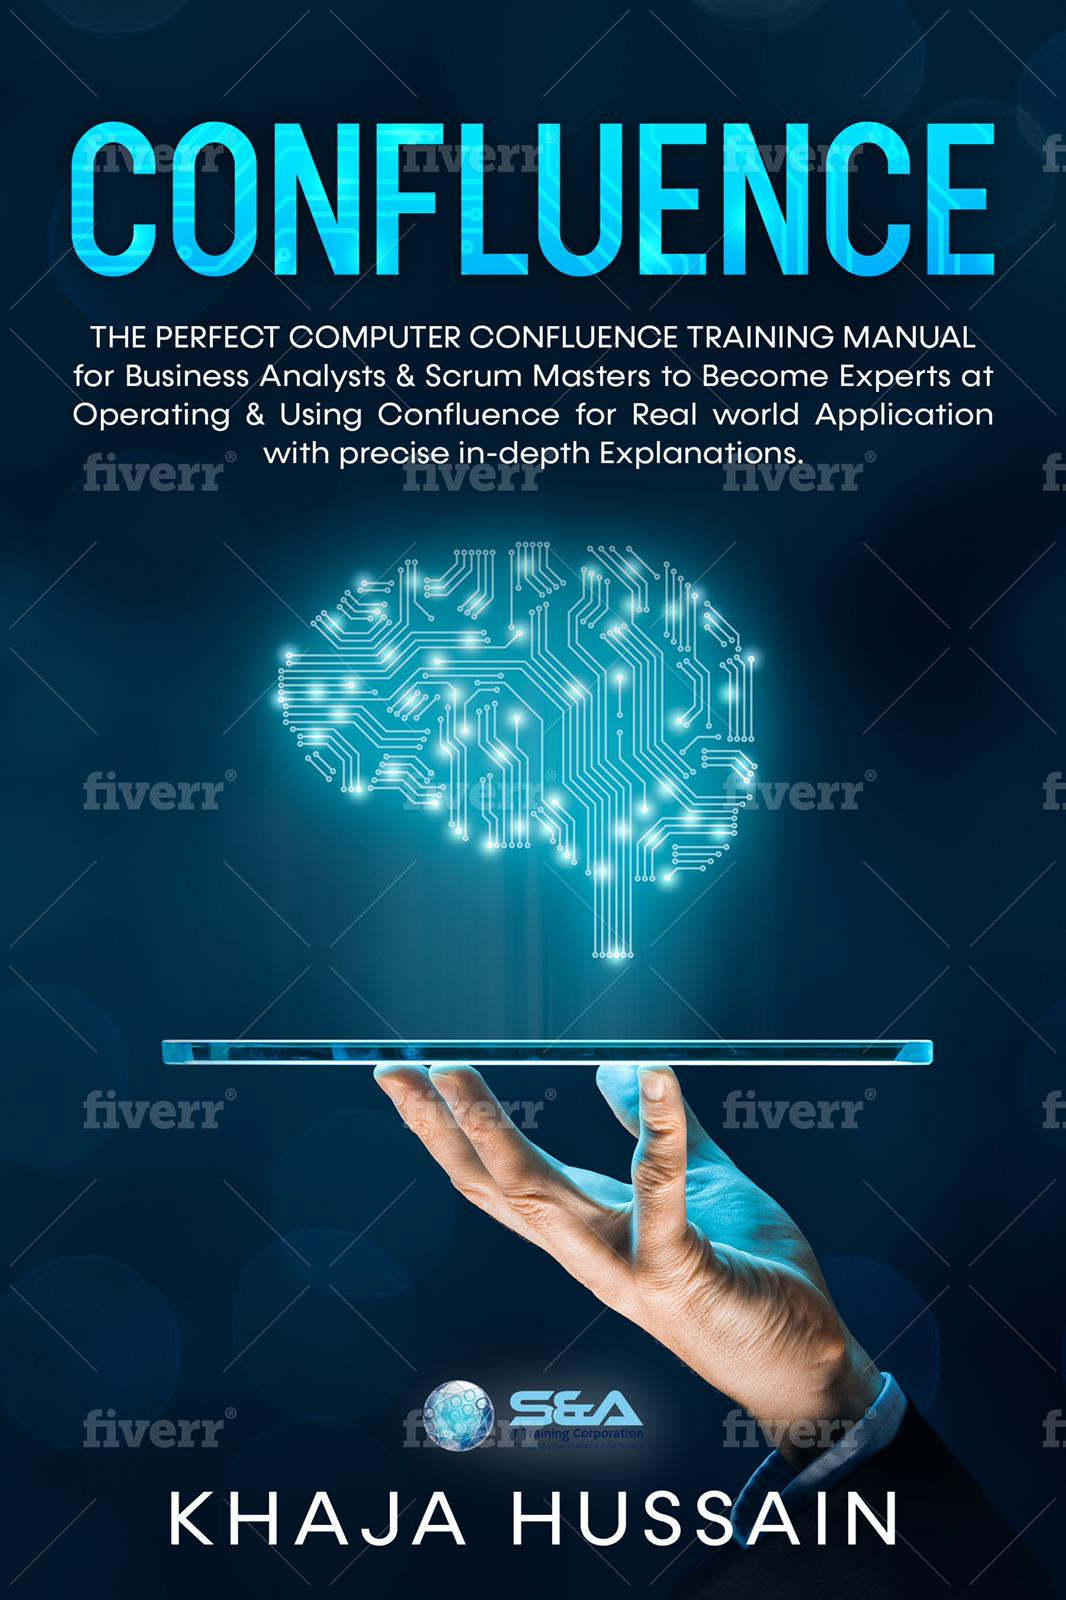 The Perfect Computer Confluence Training Manual